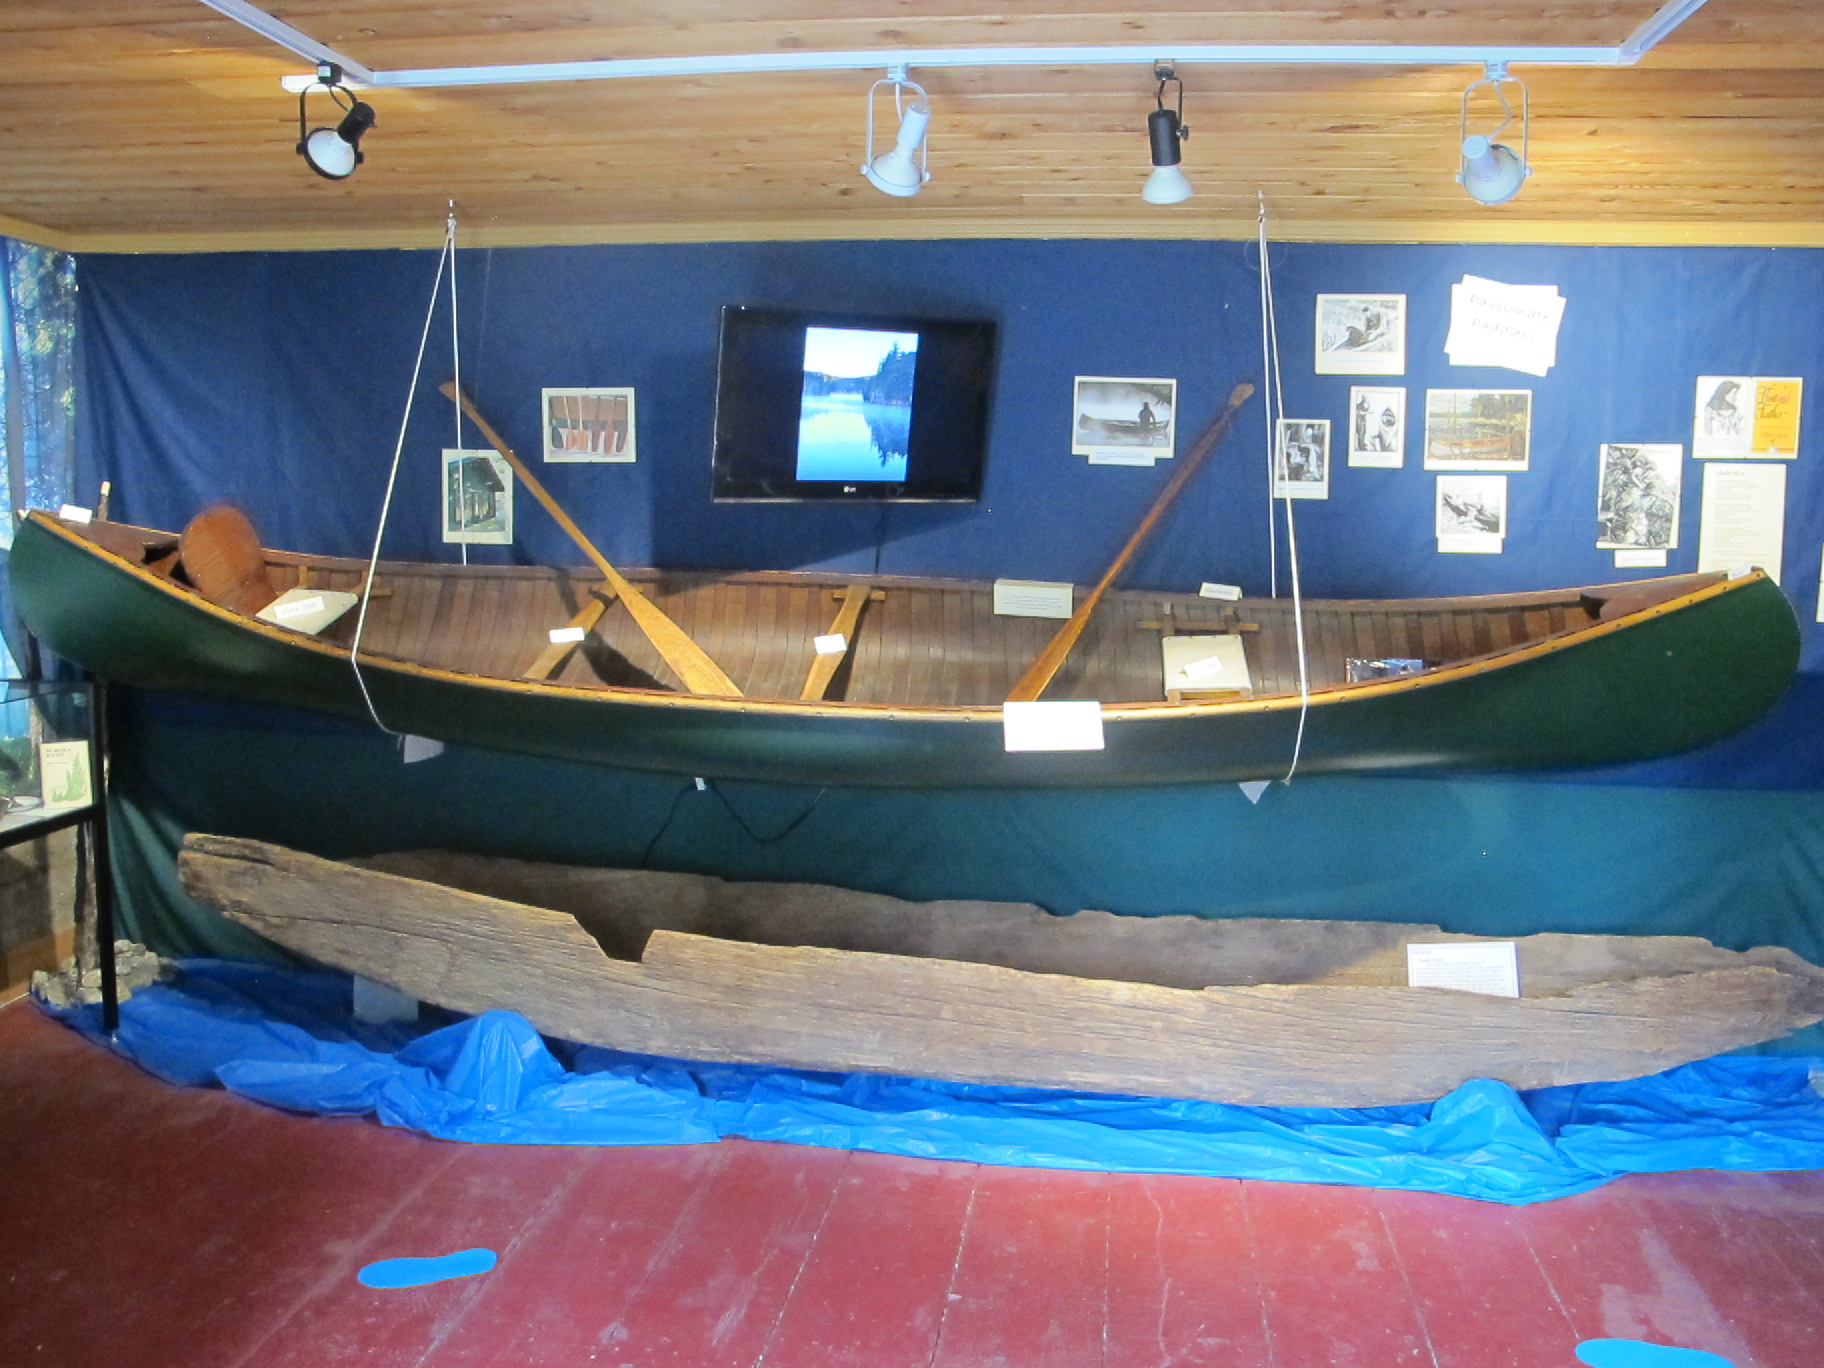 'Canoeing in Muskoka' this season's Featured exhibit